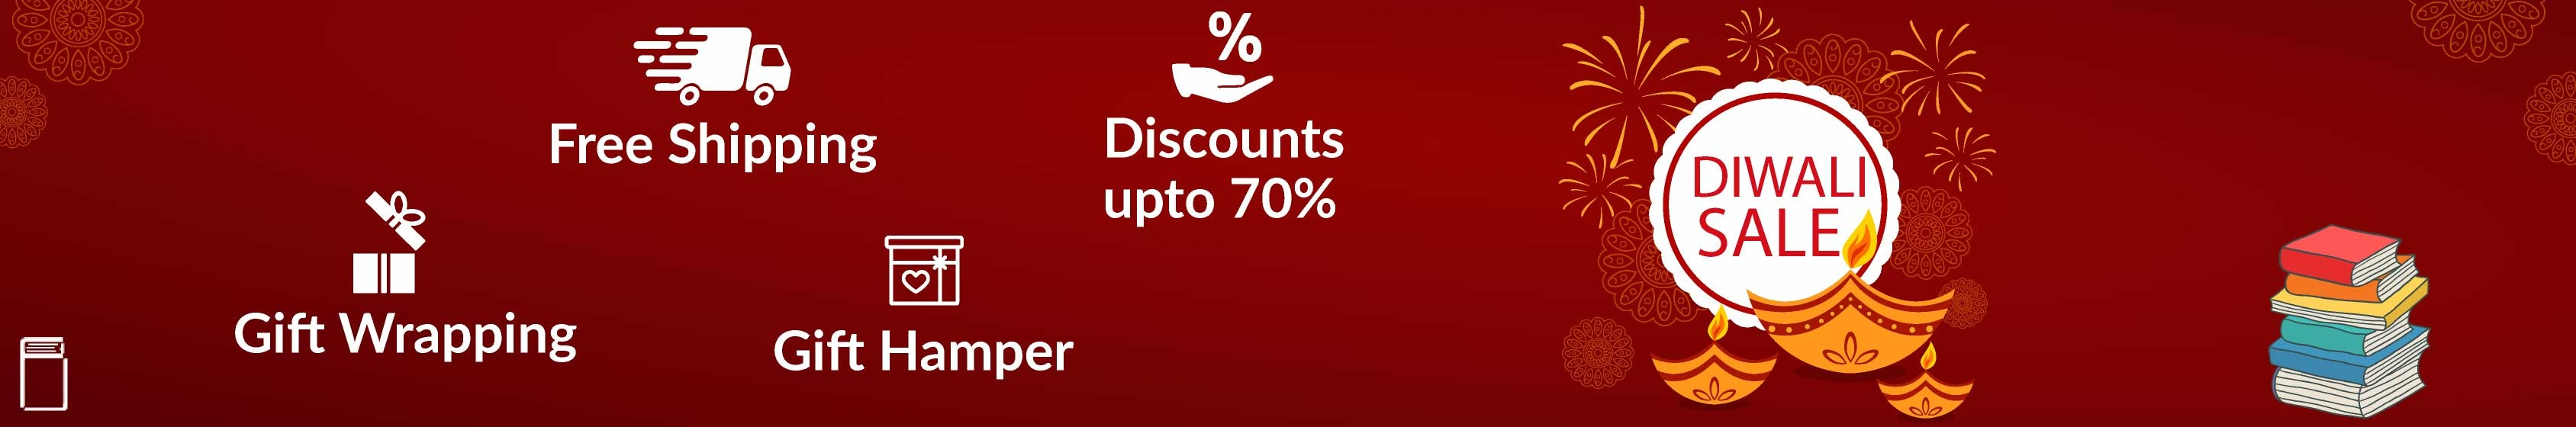 Diwali Sale Offer Books